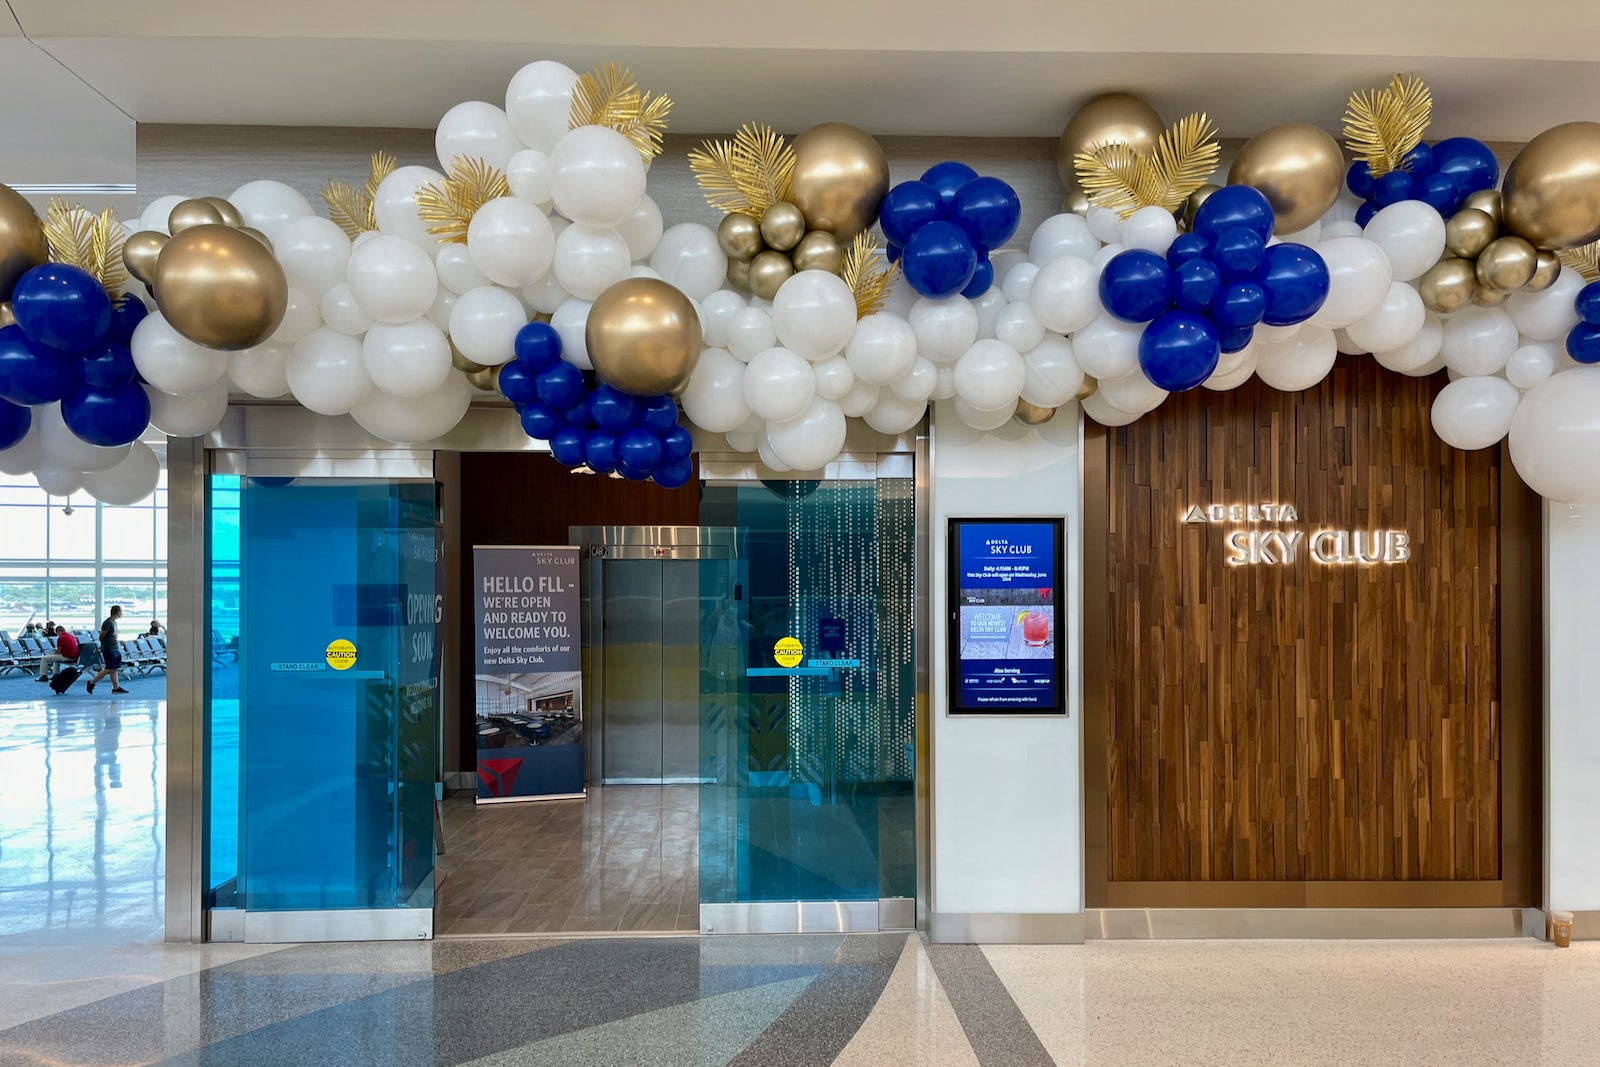 Delta's opening a snazzy new Sky Club in Fort Lauderdale — take a look inside - The Points Guy